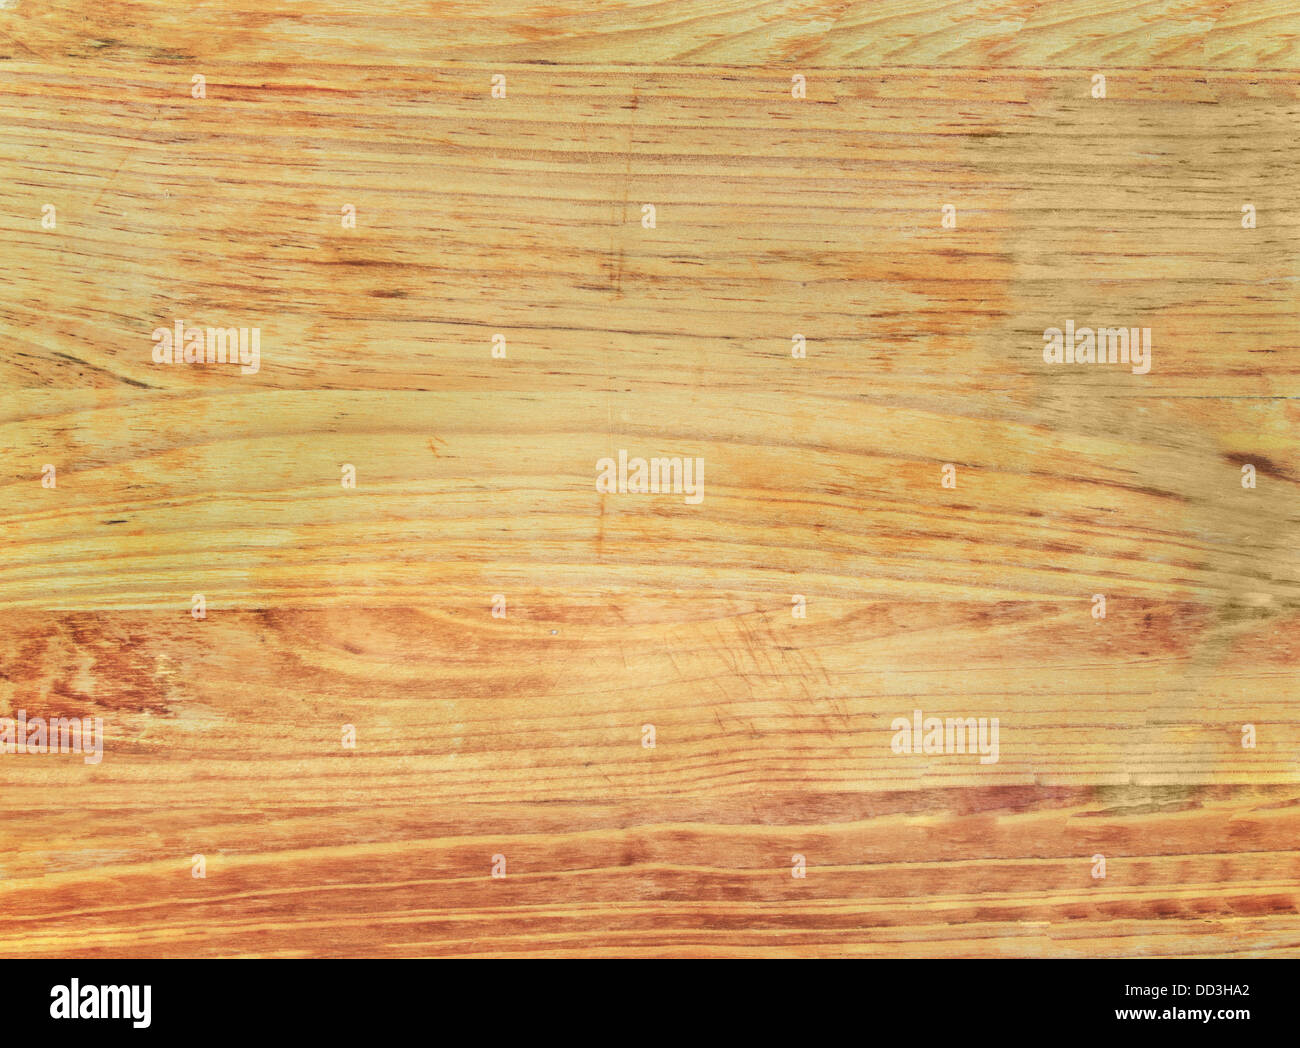 Grungy wooden texture for backdrop - Stock Image